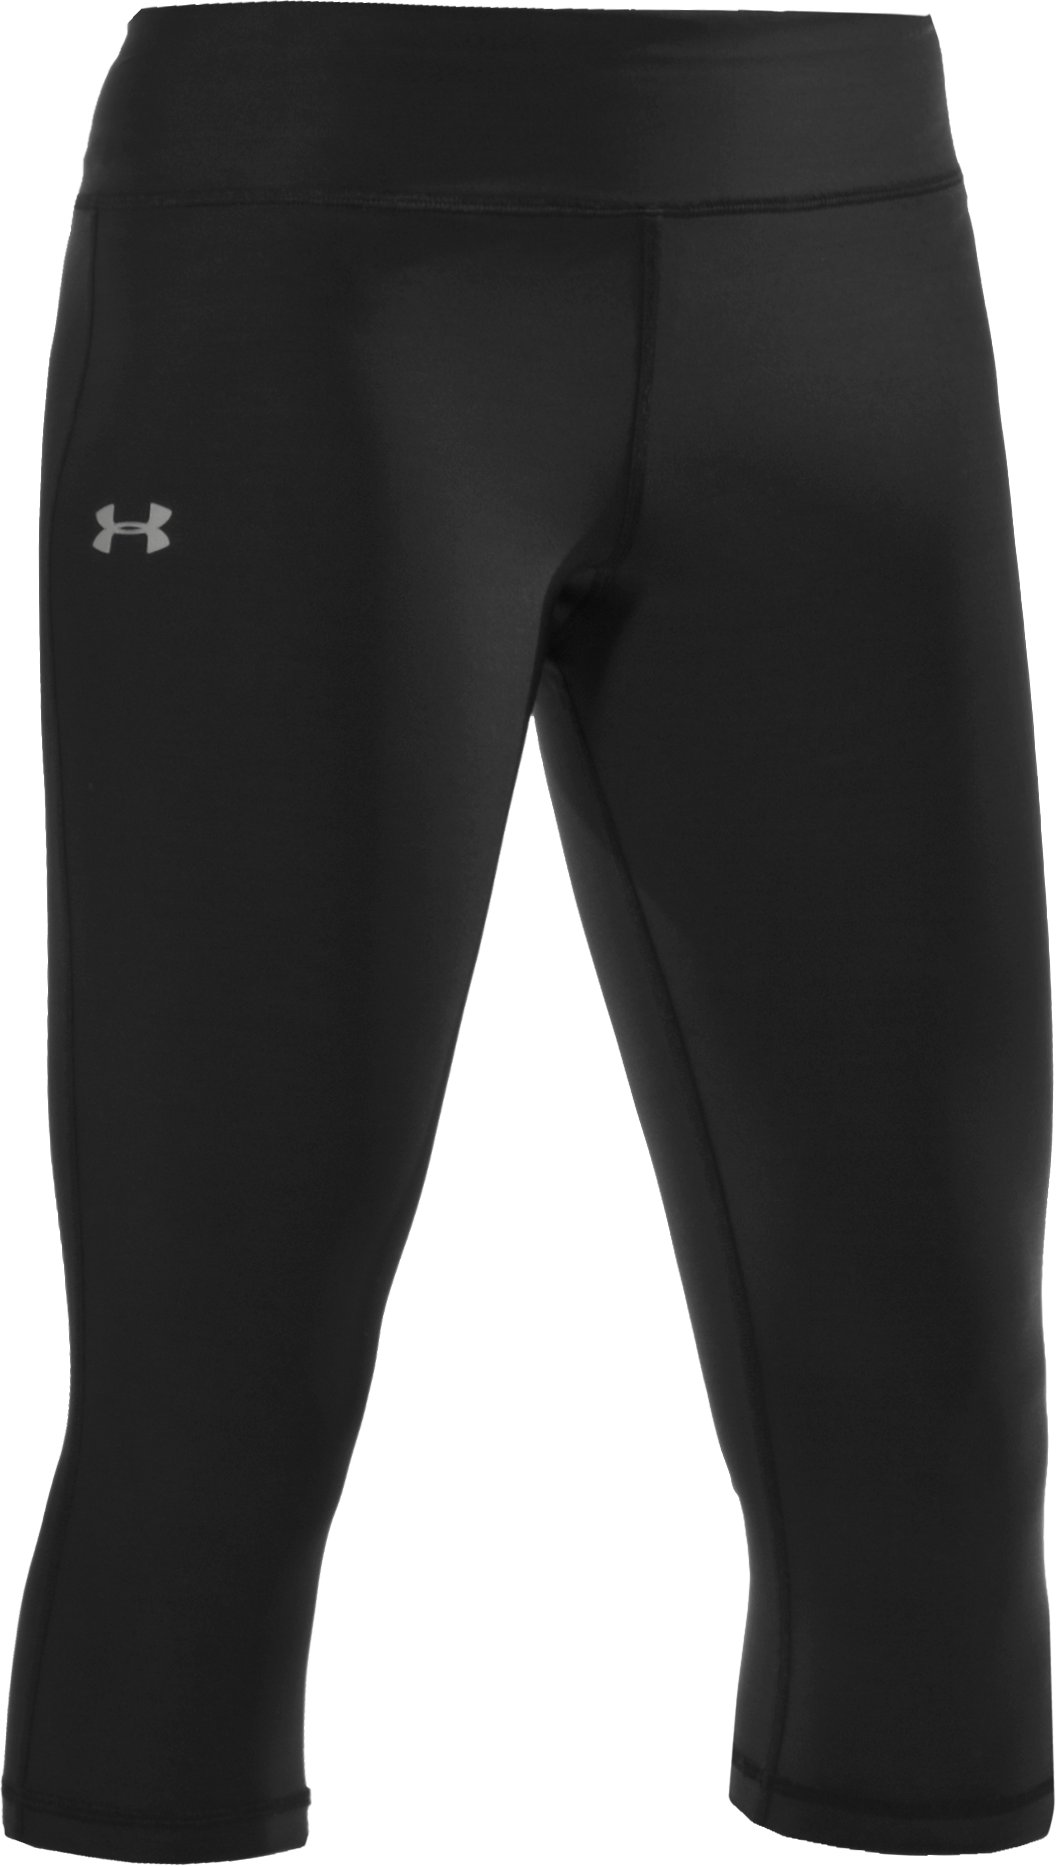 "Women's HeatGear® Lunge 17"" Capri, Black ,"